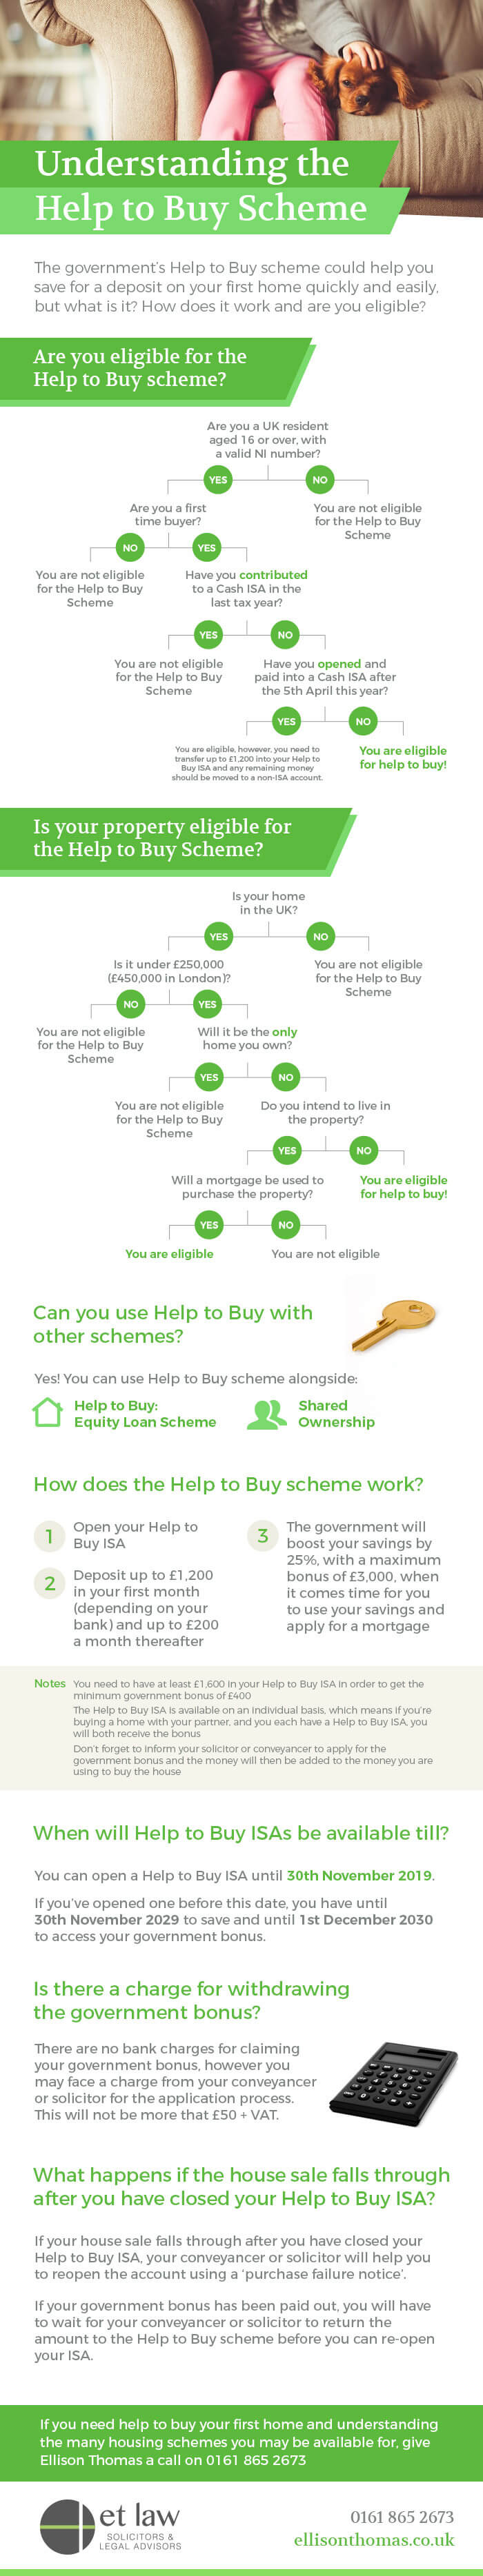 Help To Buy Scheme Explanation - infographic